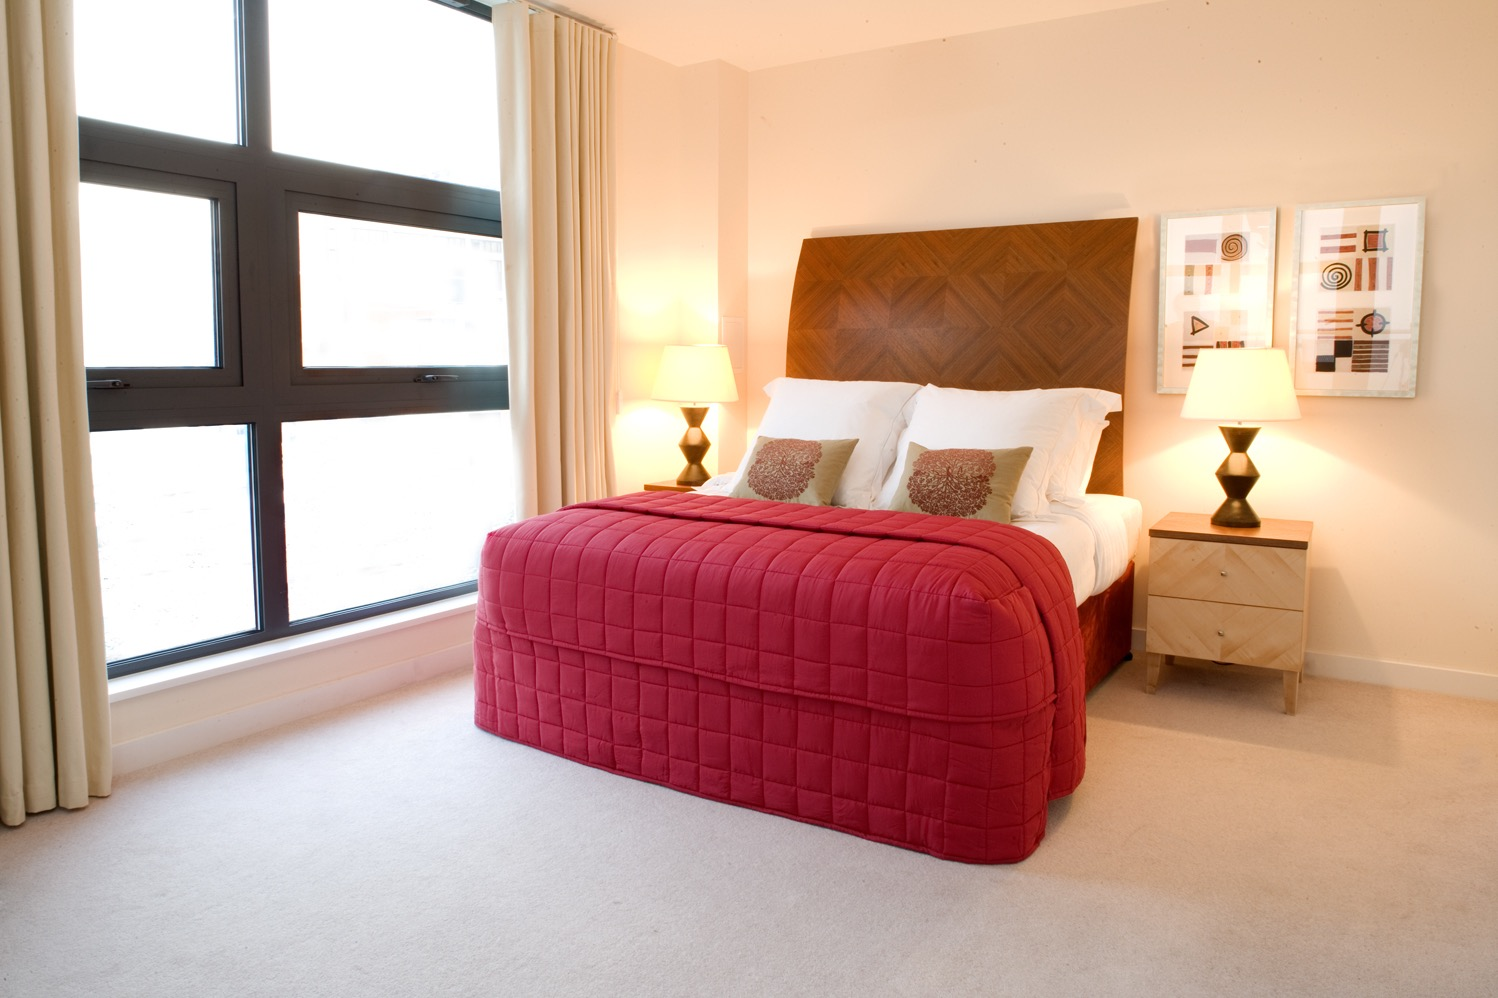 Apartment Bedroom Decor Tips And Ideas